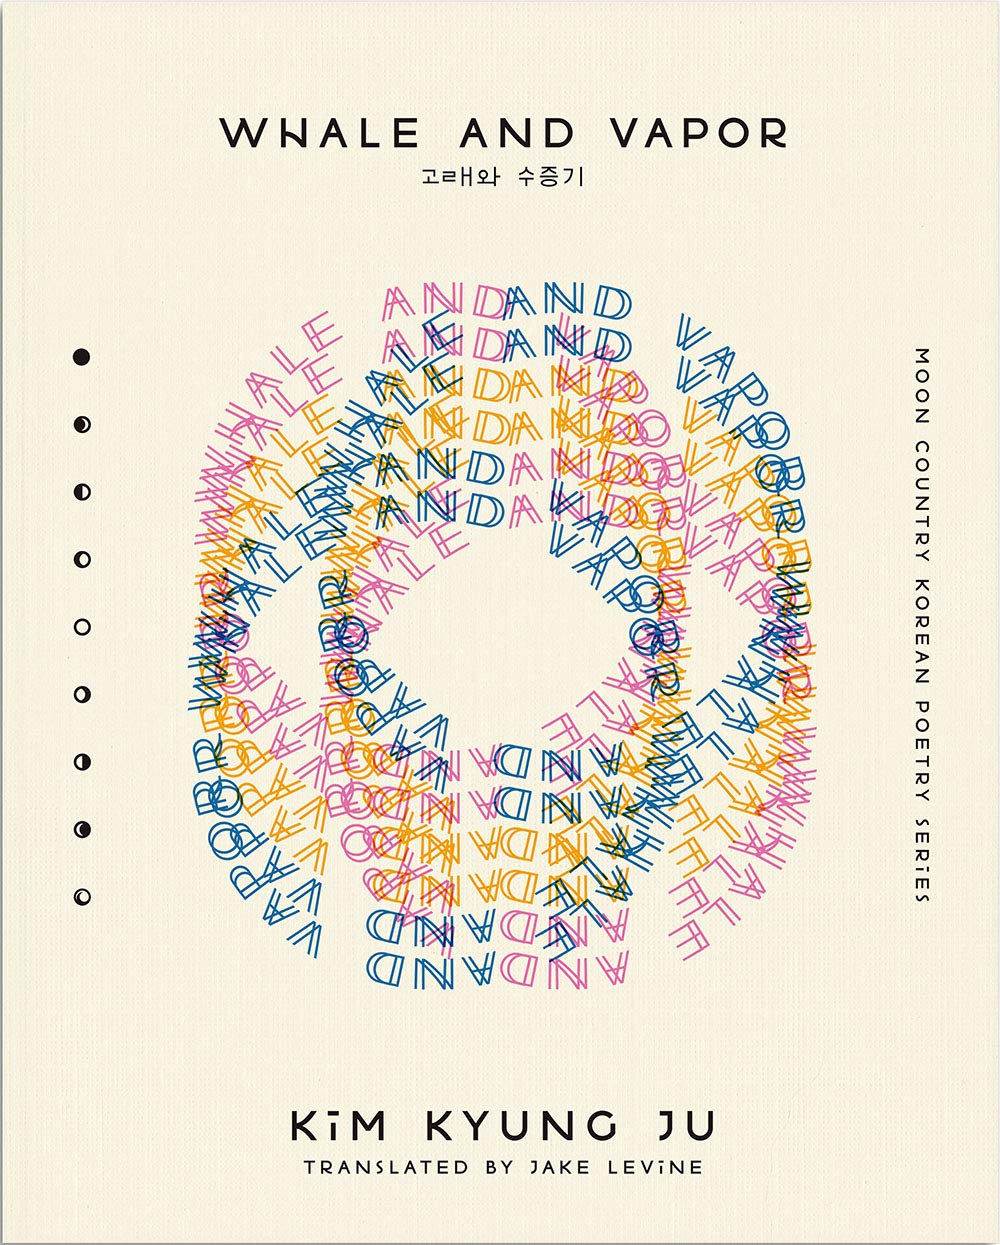 Whale and Vapor